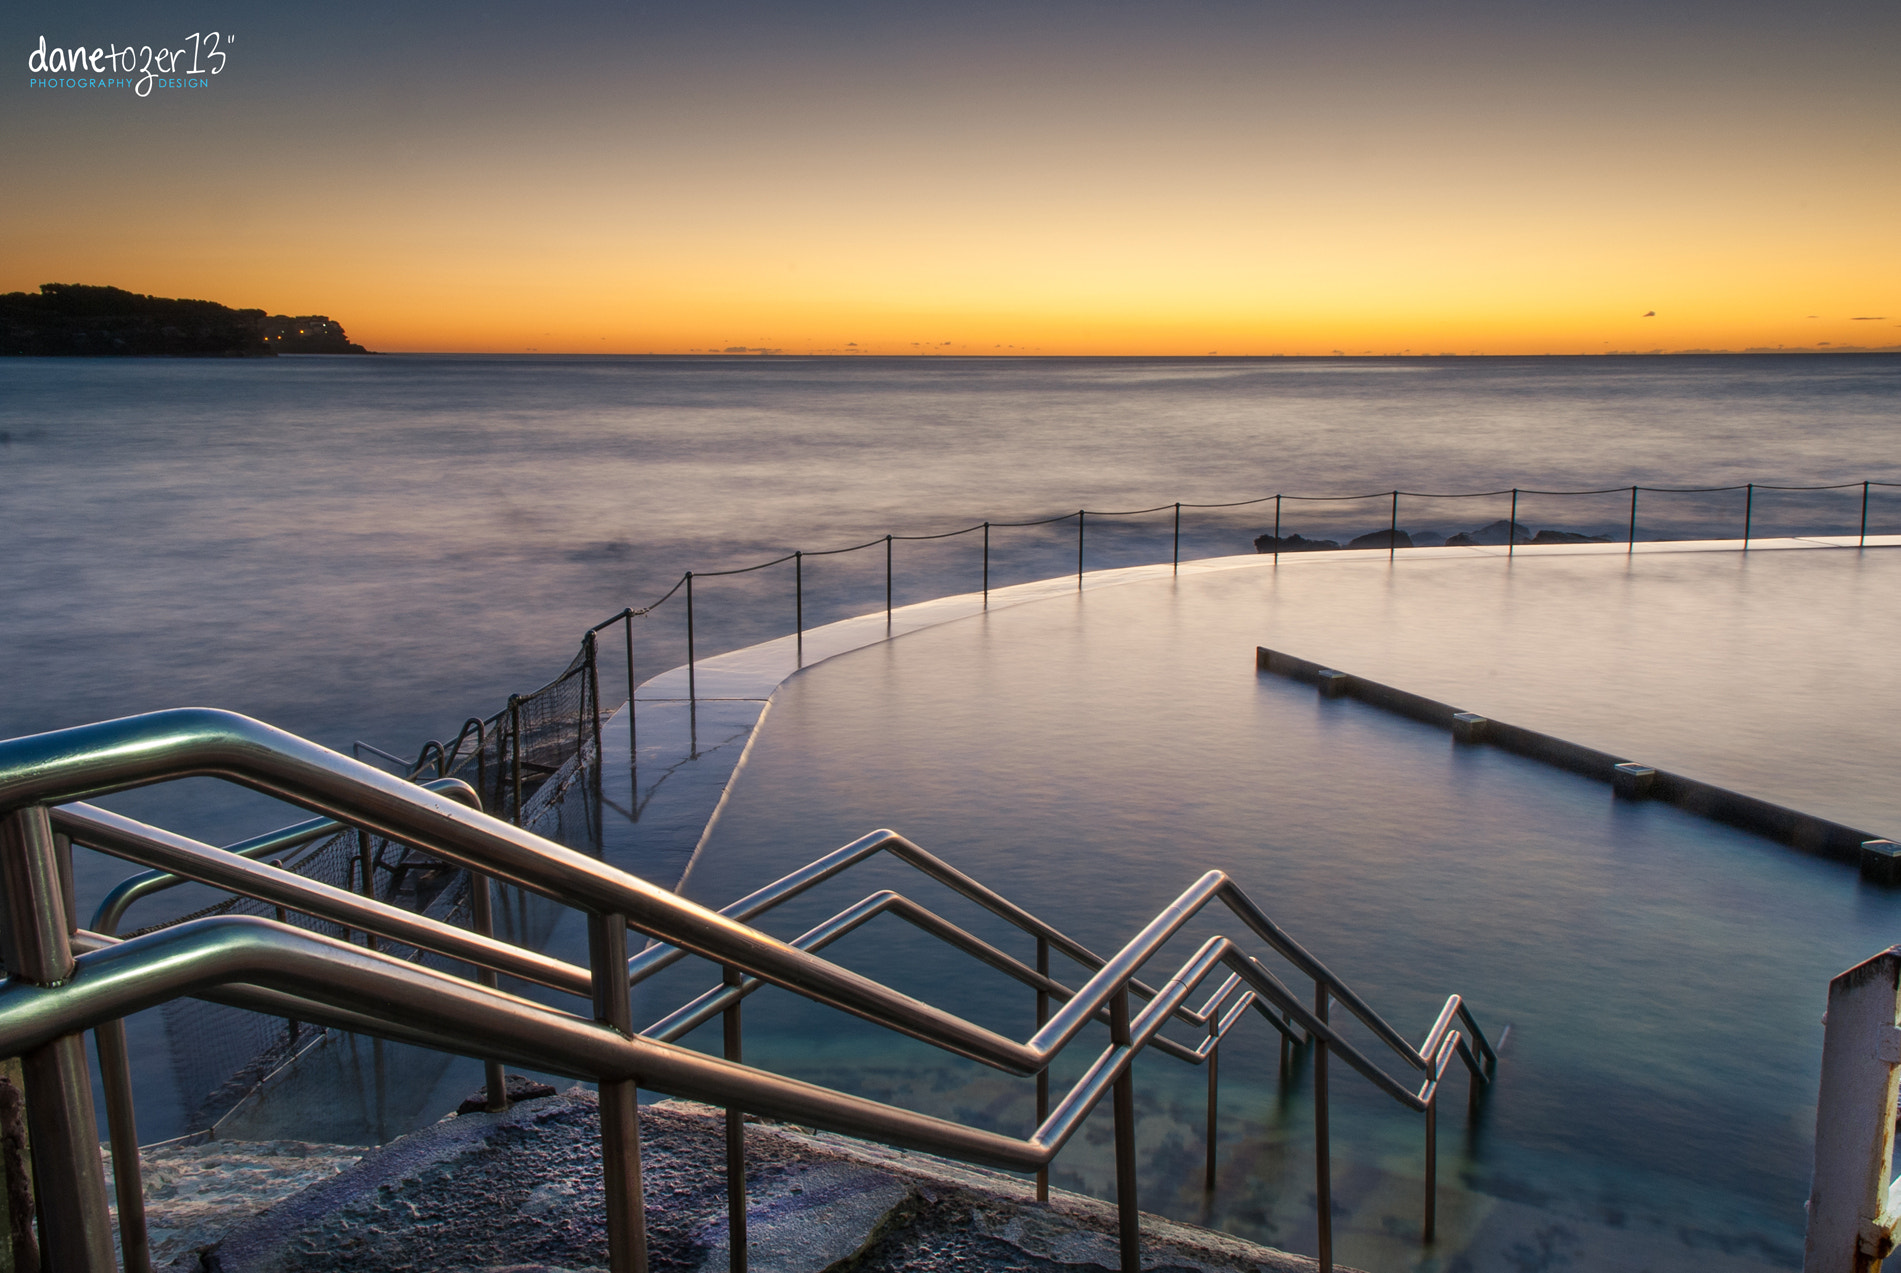 Photograph Bronte Sunrise by Dane Tozer on 500px